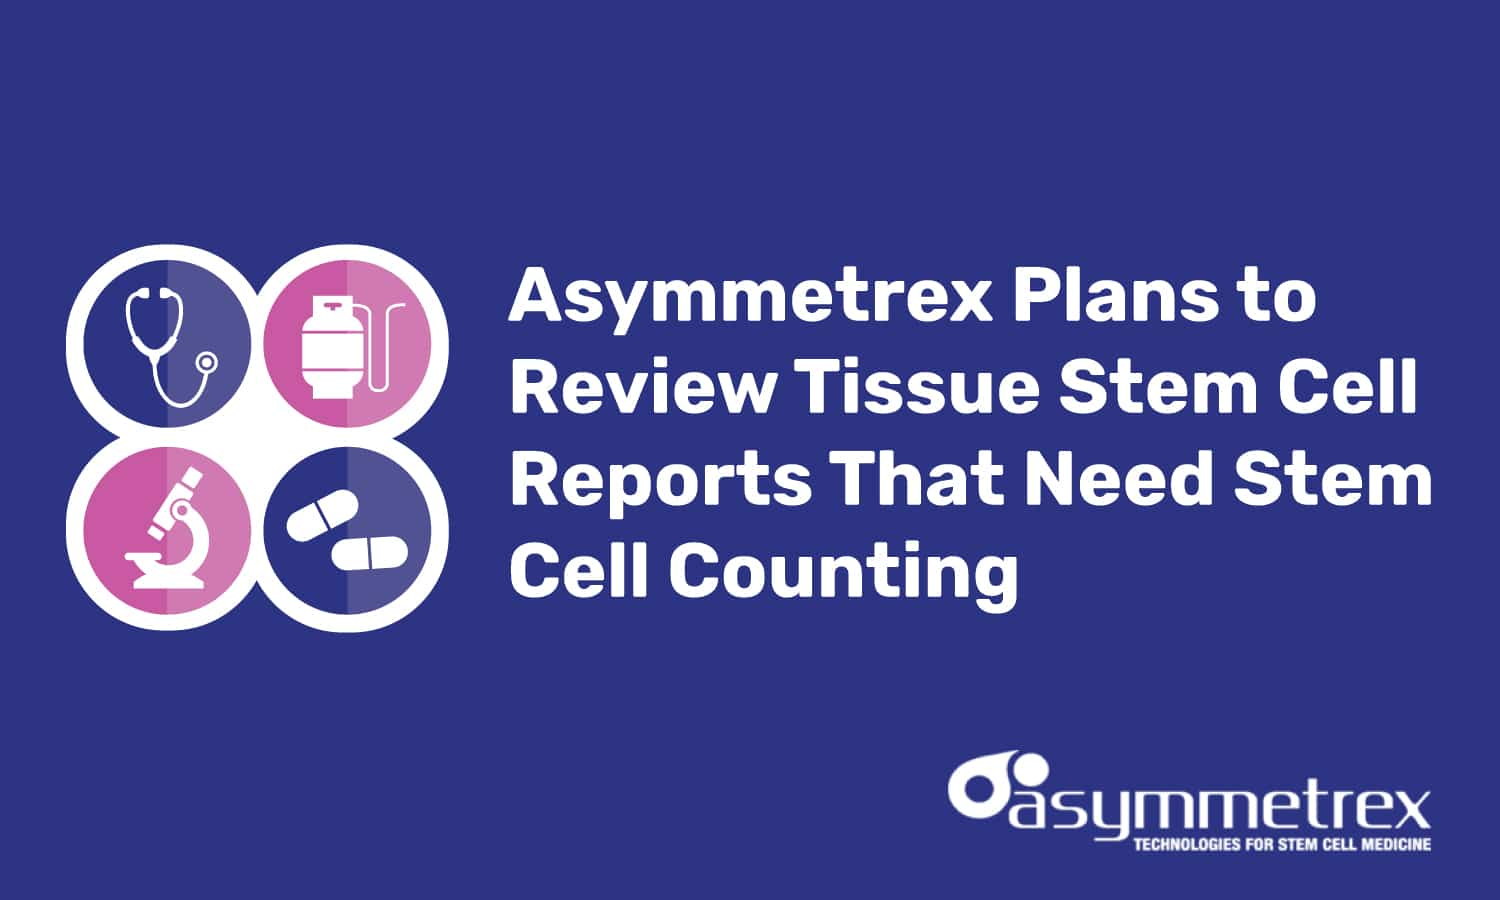 Asymmetrex Plans to Review Tissue Stem Cell Reports that Need Stem Cell Counting